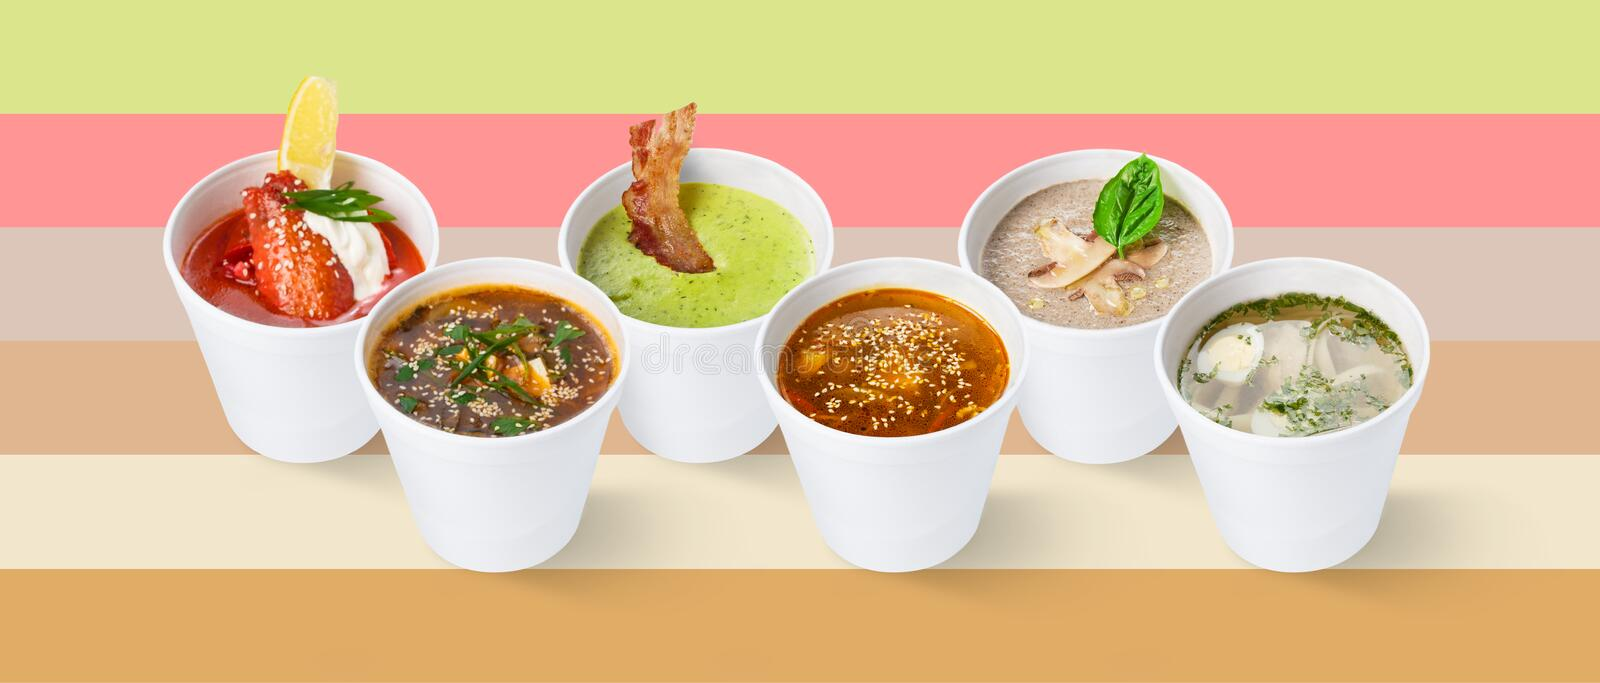 Set of various restaurant soups on colorful background. Collage of five different restaurant soups in cups, isolated on colorful background, cutout for menu royalty free stock photos